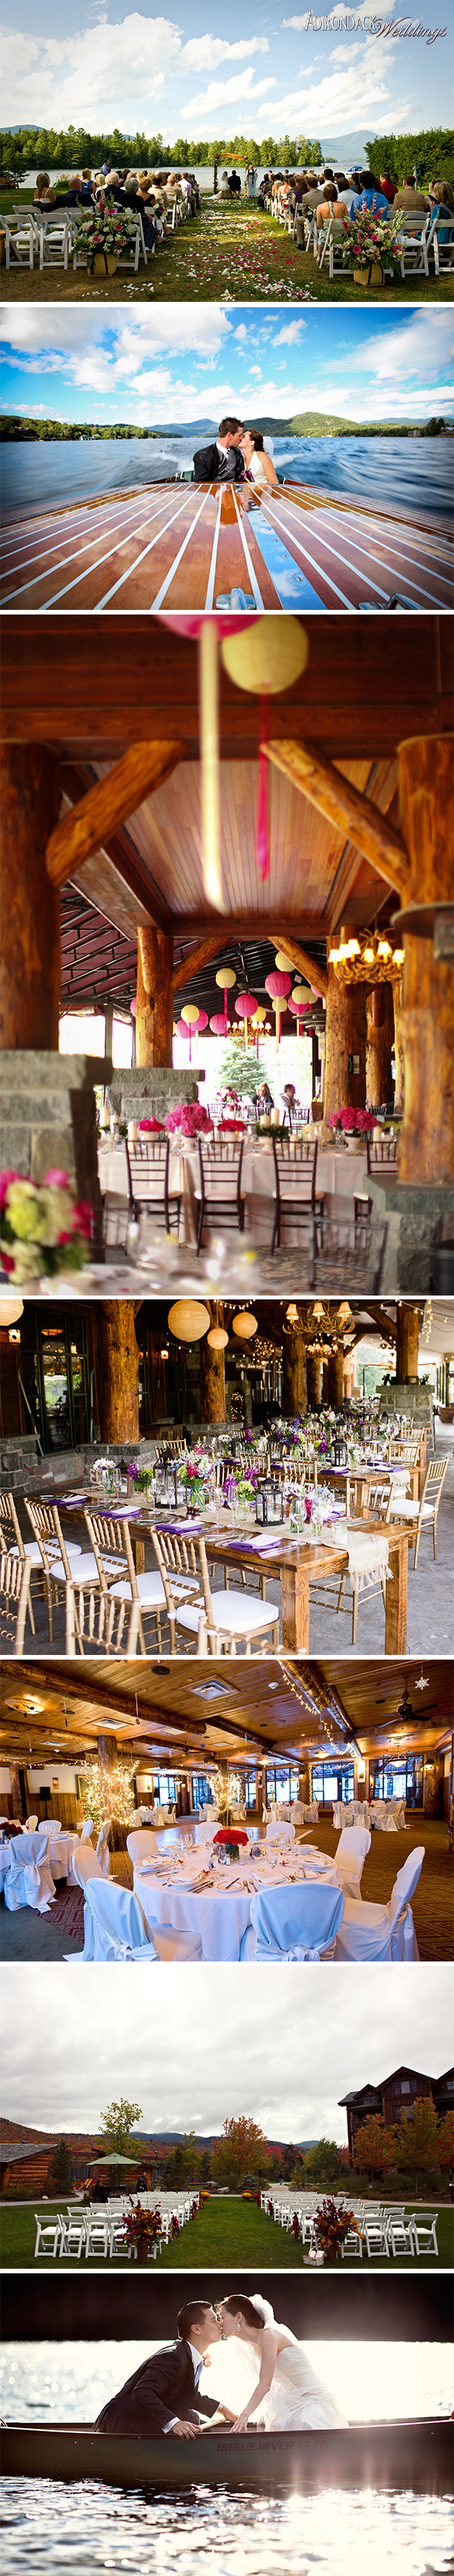 The Whiteface Lodge | Adirondack Weddings Magazine